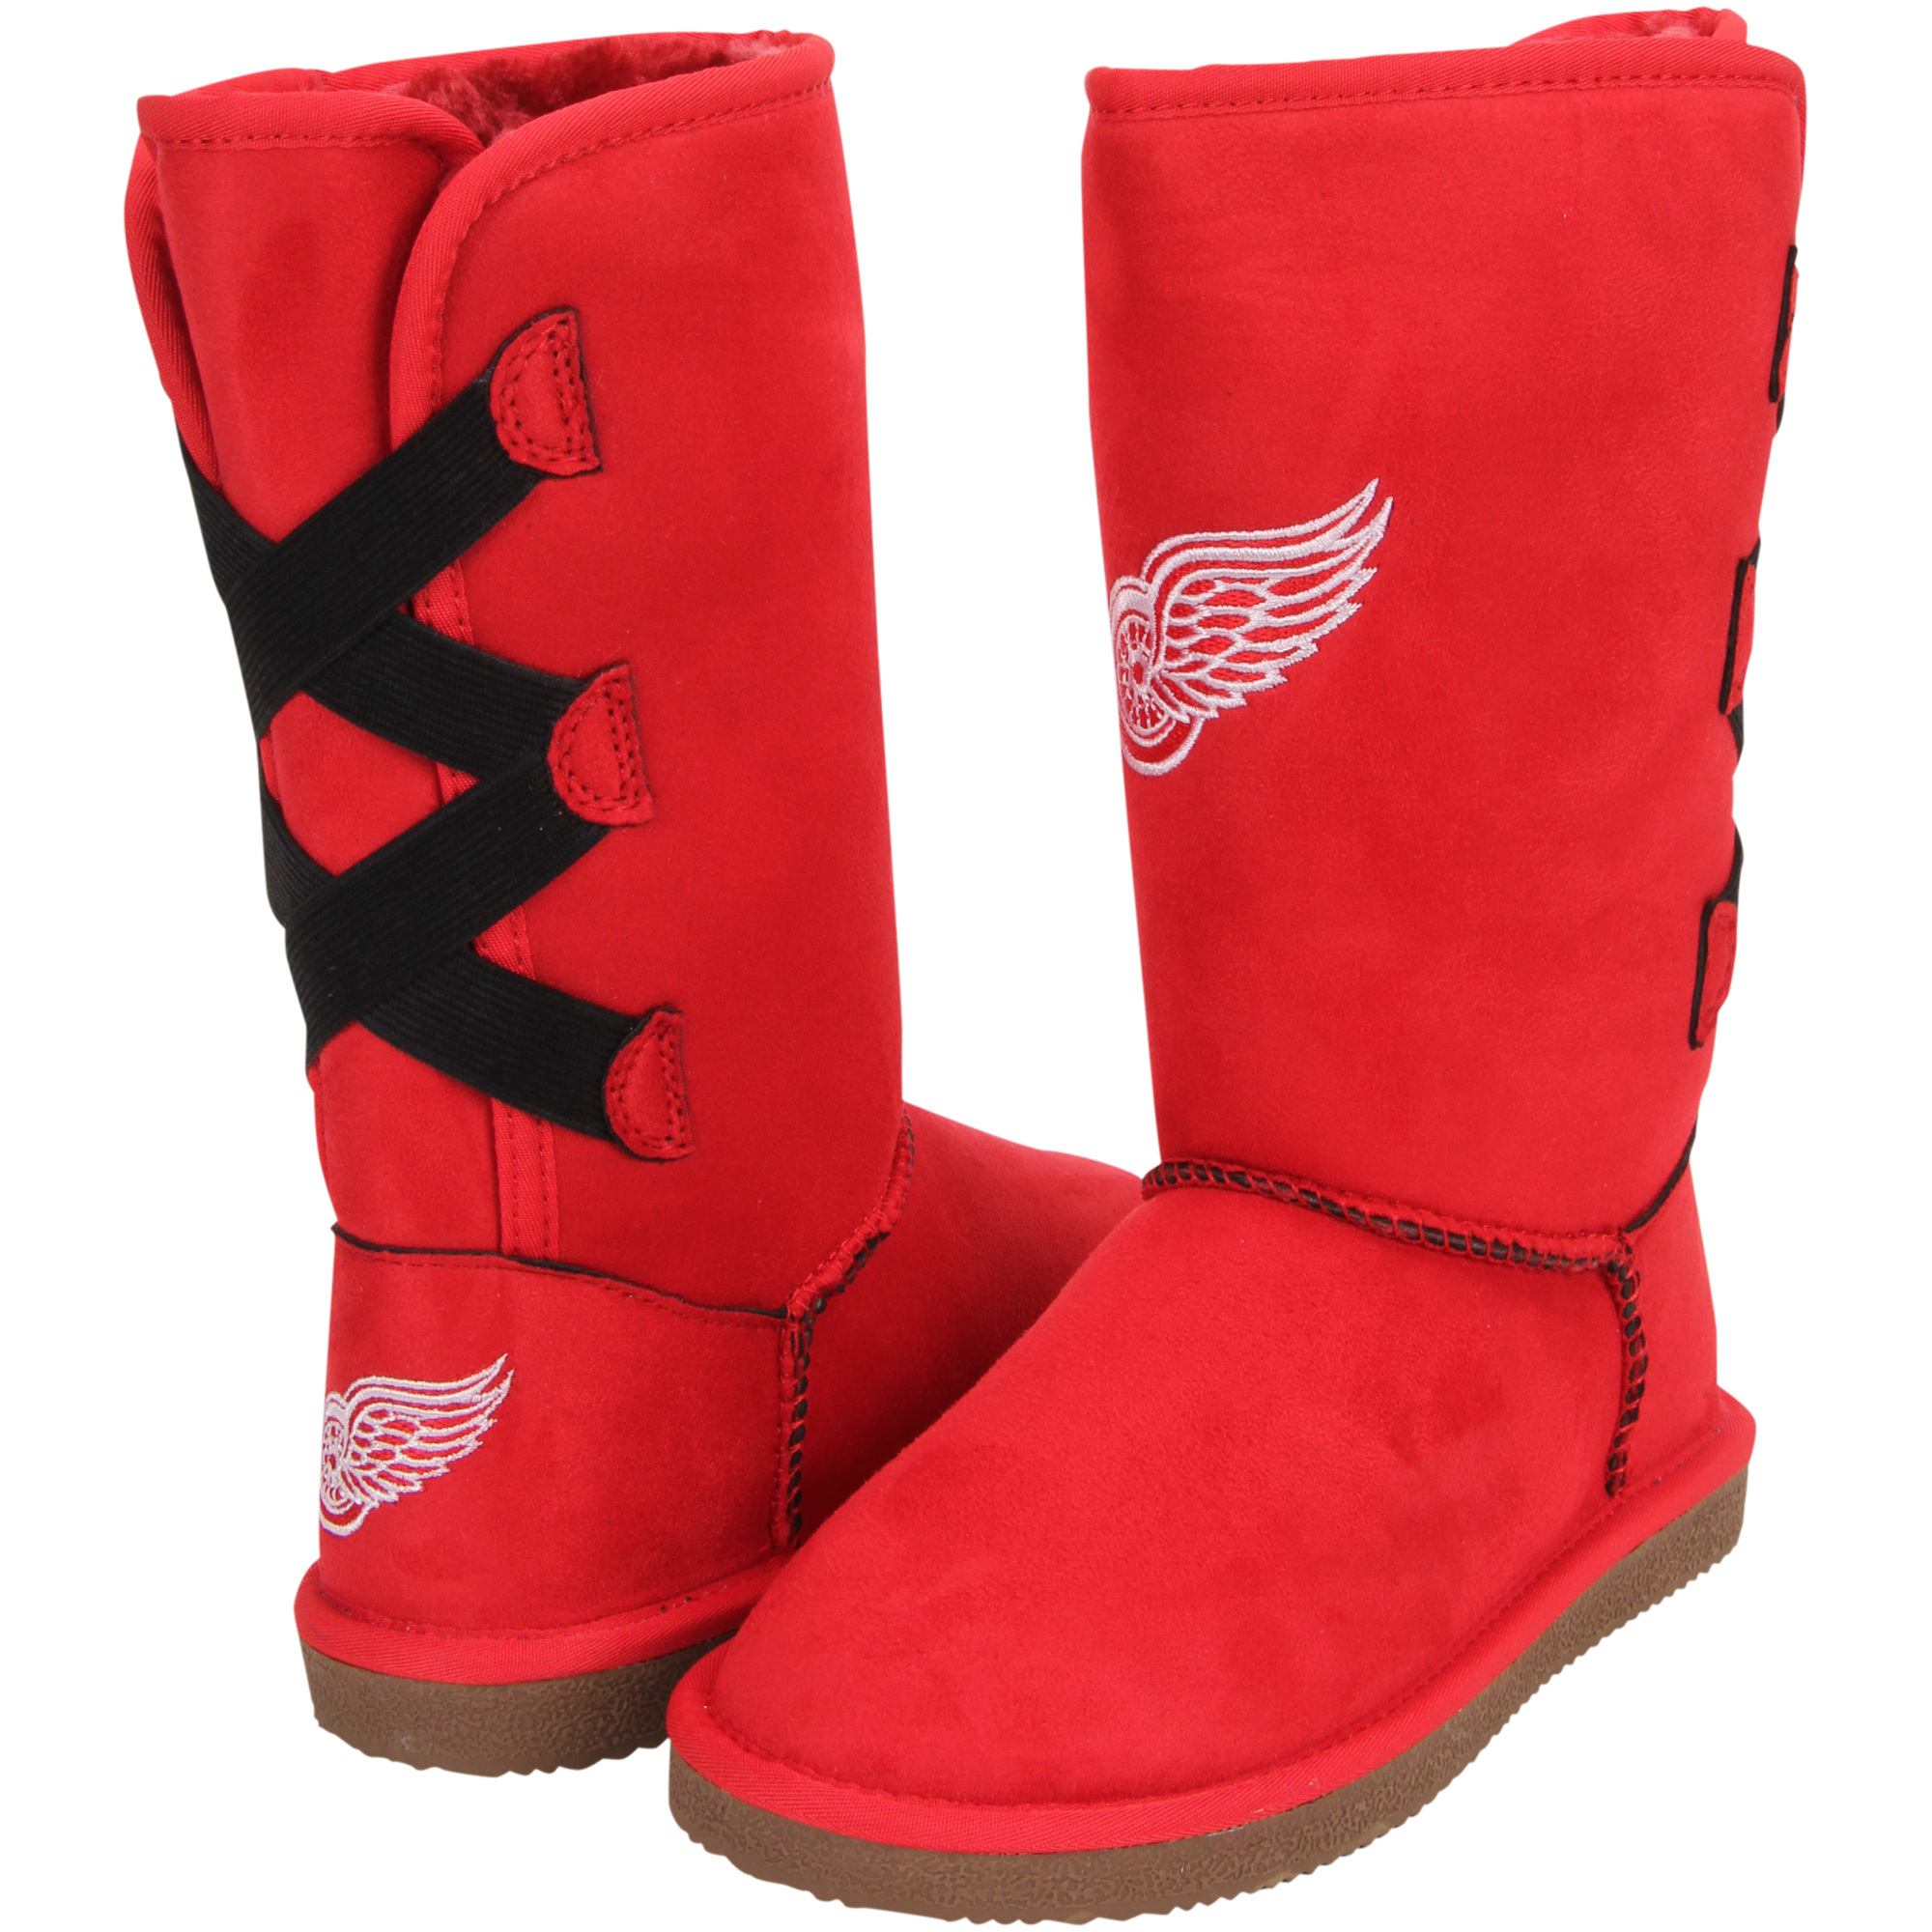 Women's Cuce Detroit Red Wings Conqueror Boots by Cuce Shoes